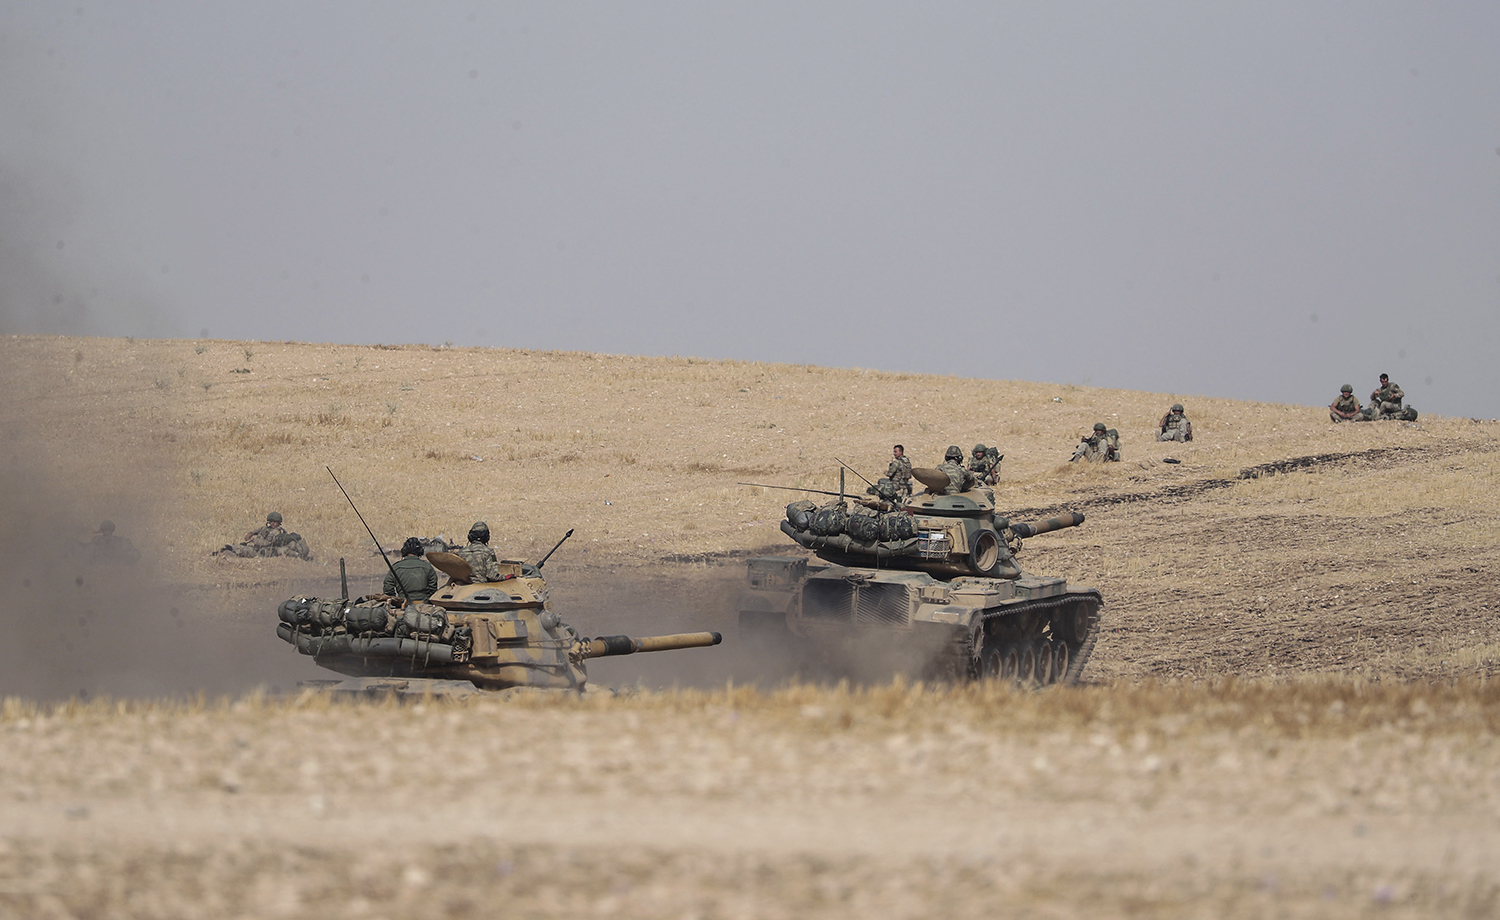 Turkish tanks and troops stationed near Syrian town of Manbij, Syria, Tuesday. Oct. 15, 2019. (Ugur Can/DHA via AP)